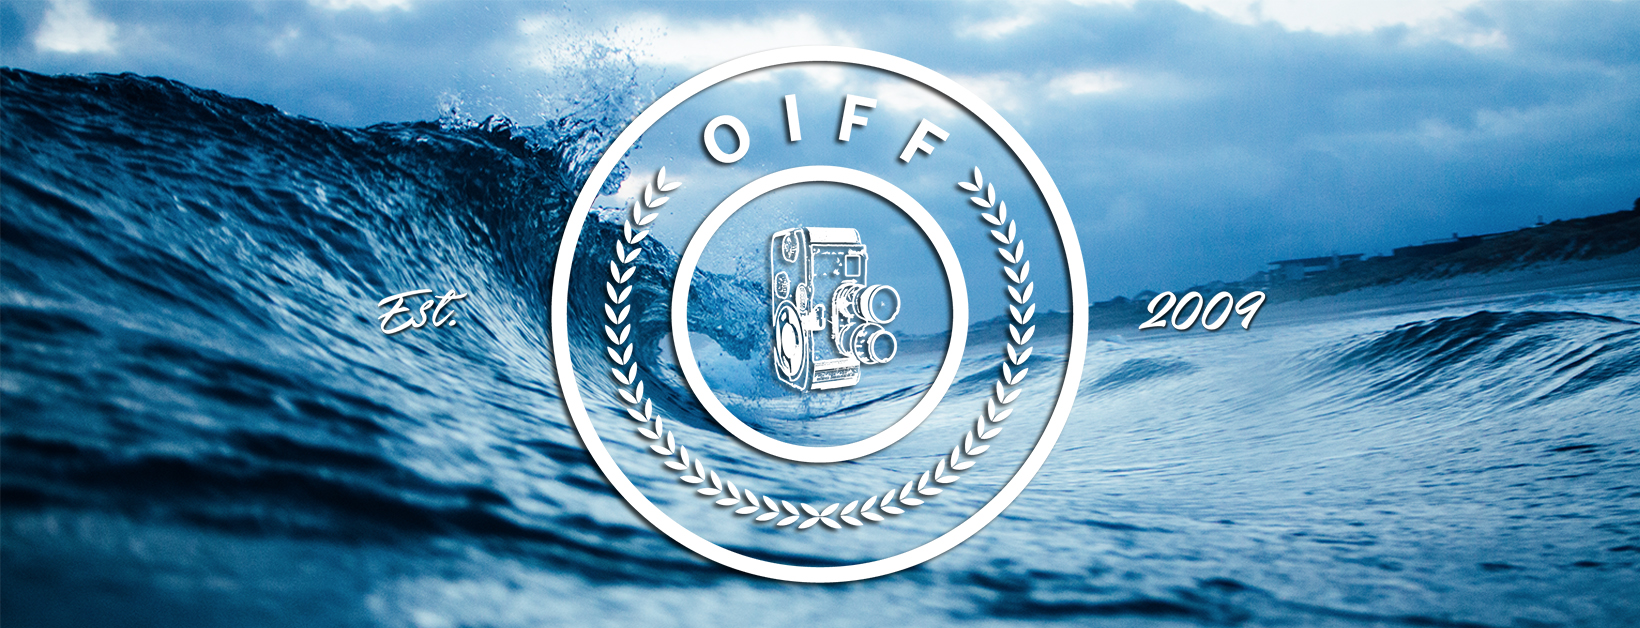 Oceanside Film Festival